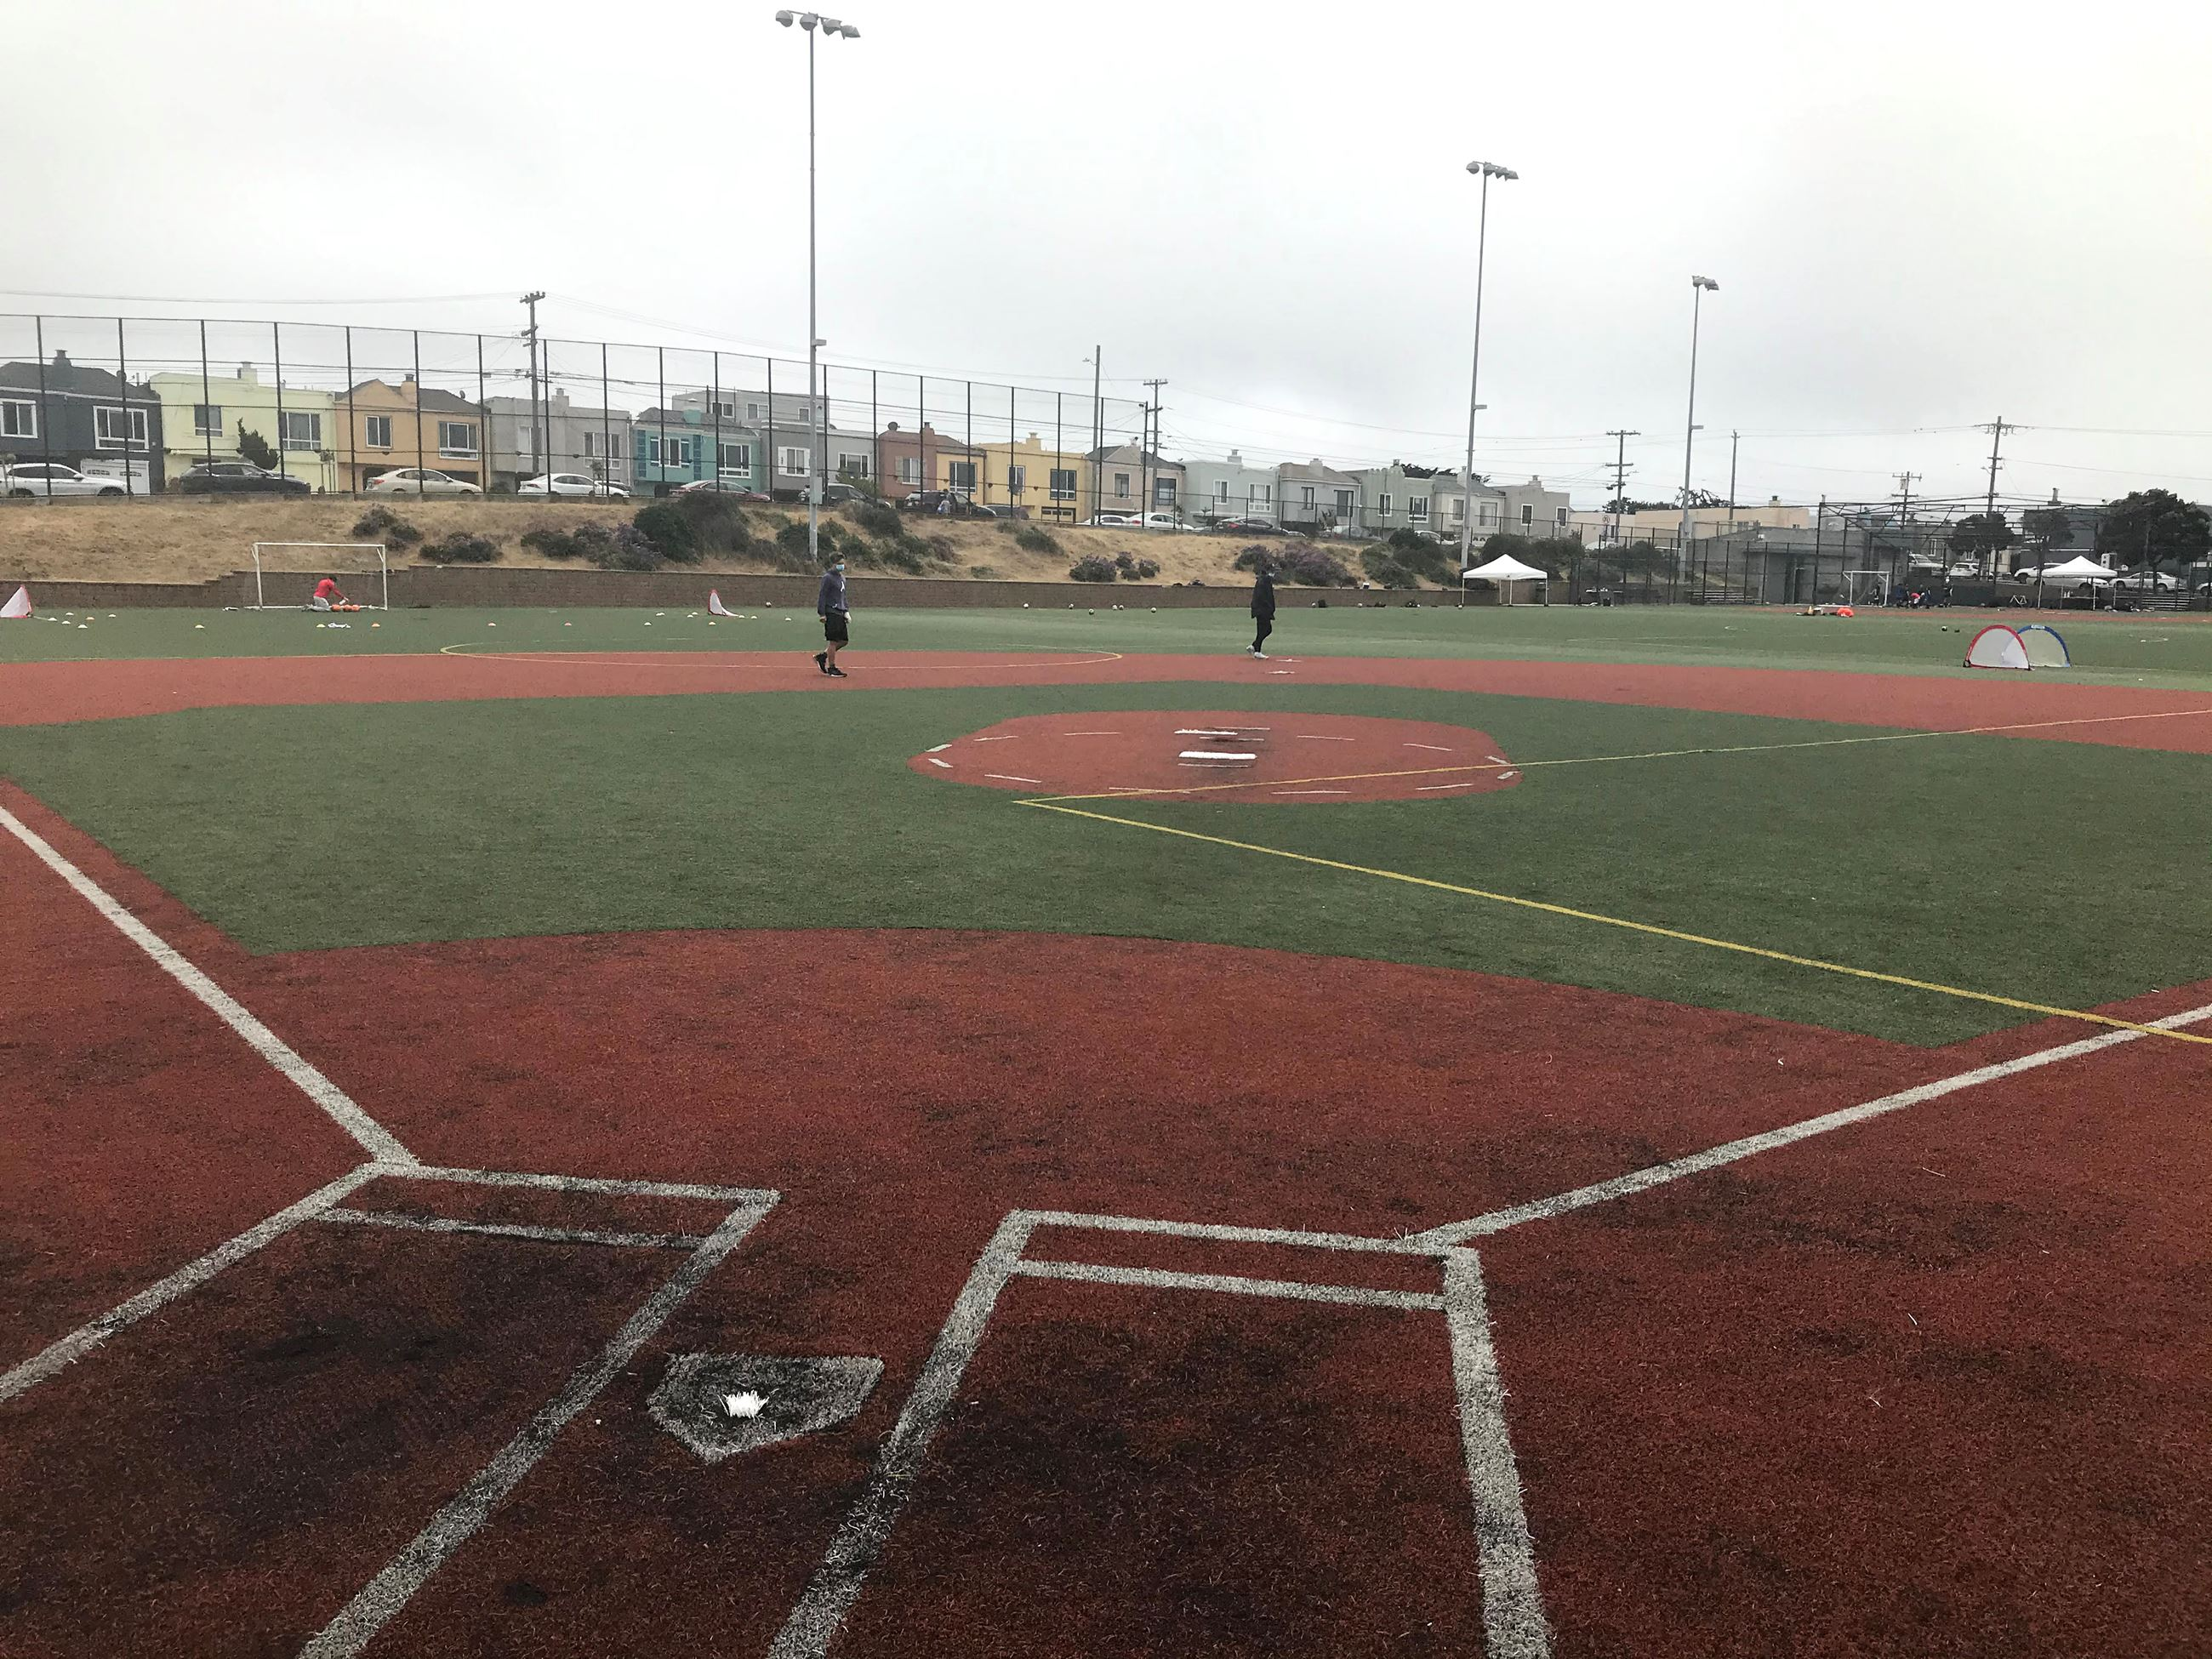 Ballfield with degraded turf field